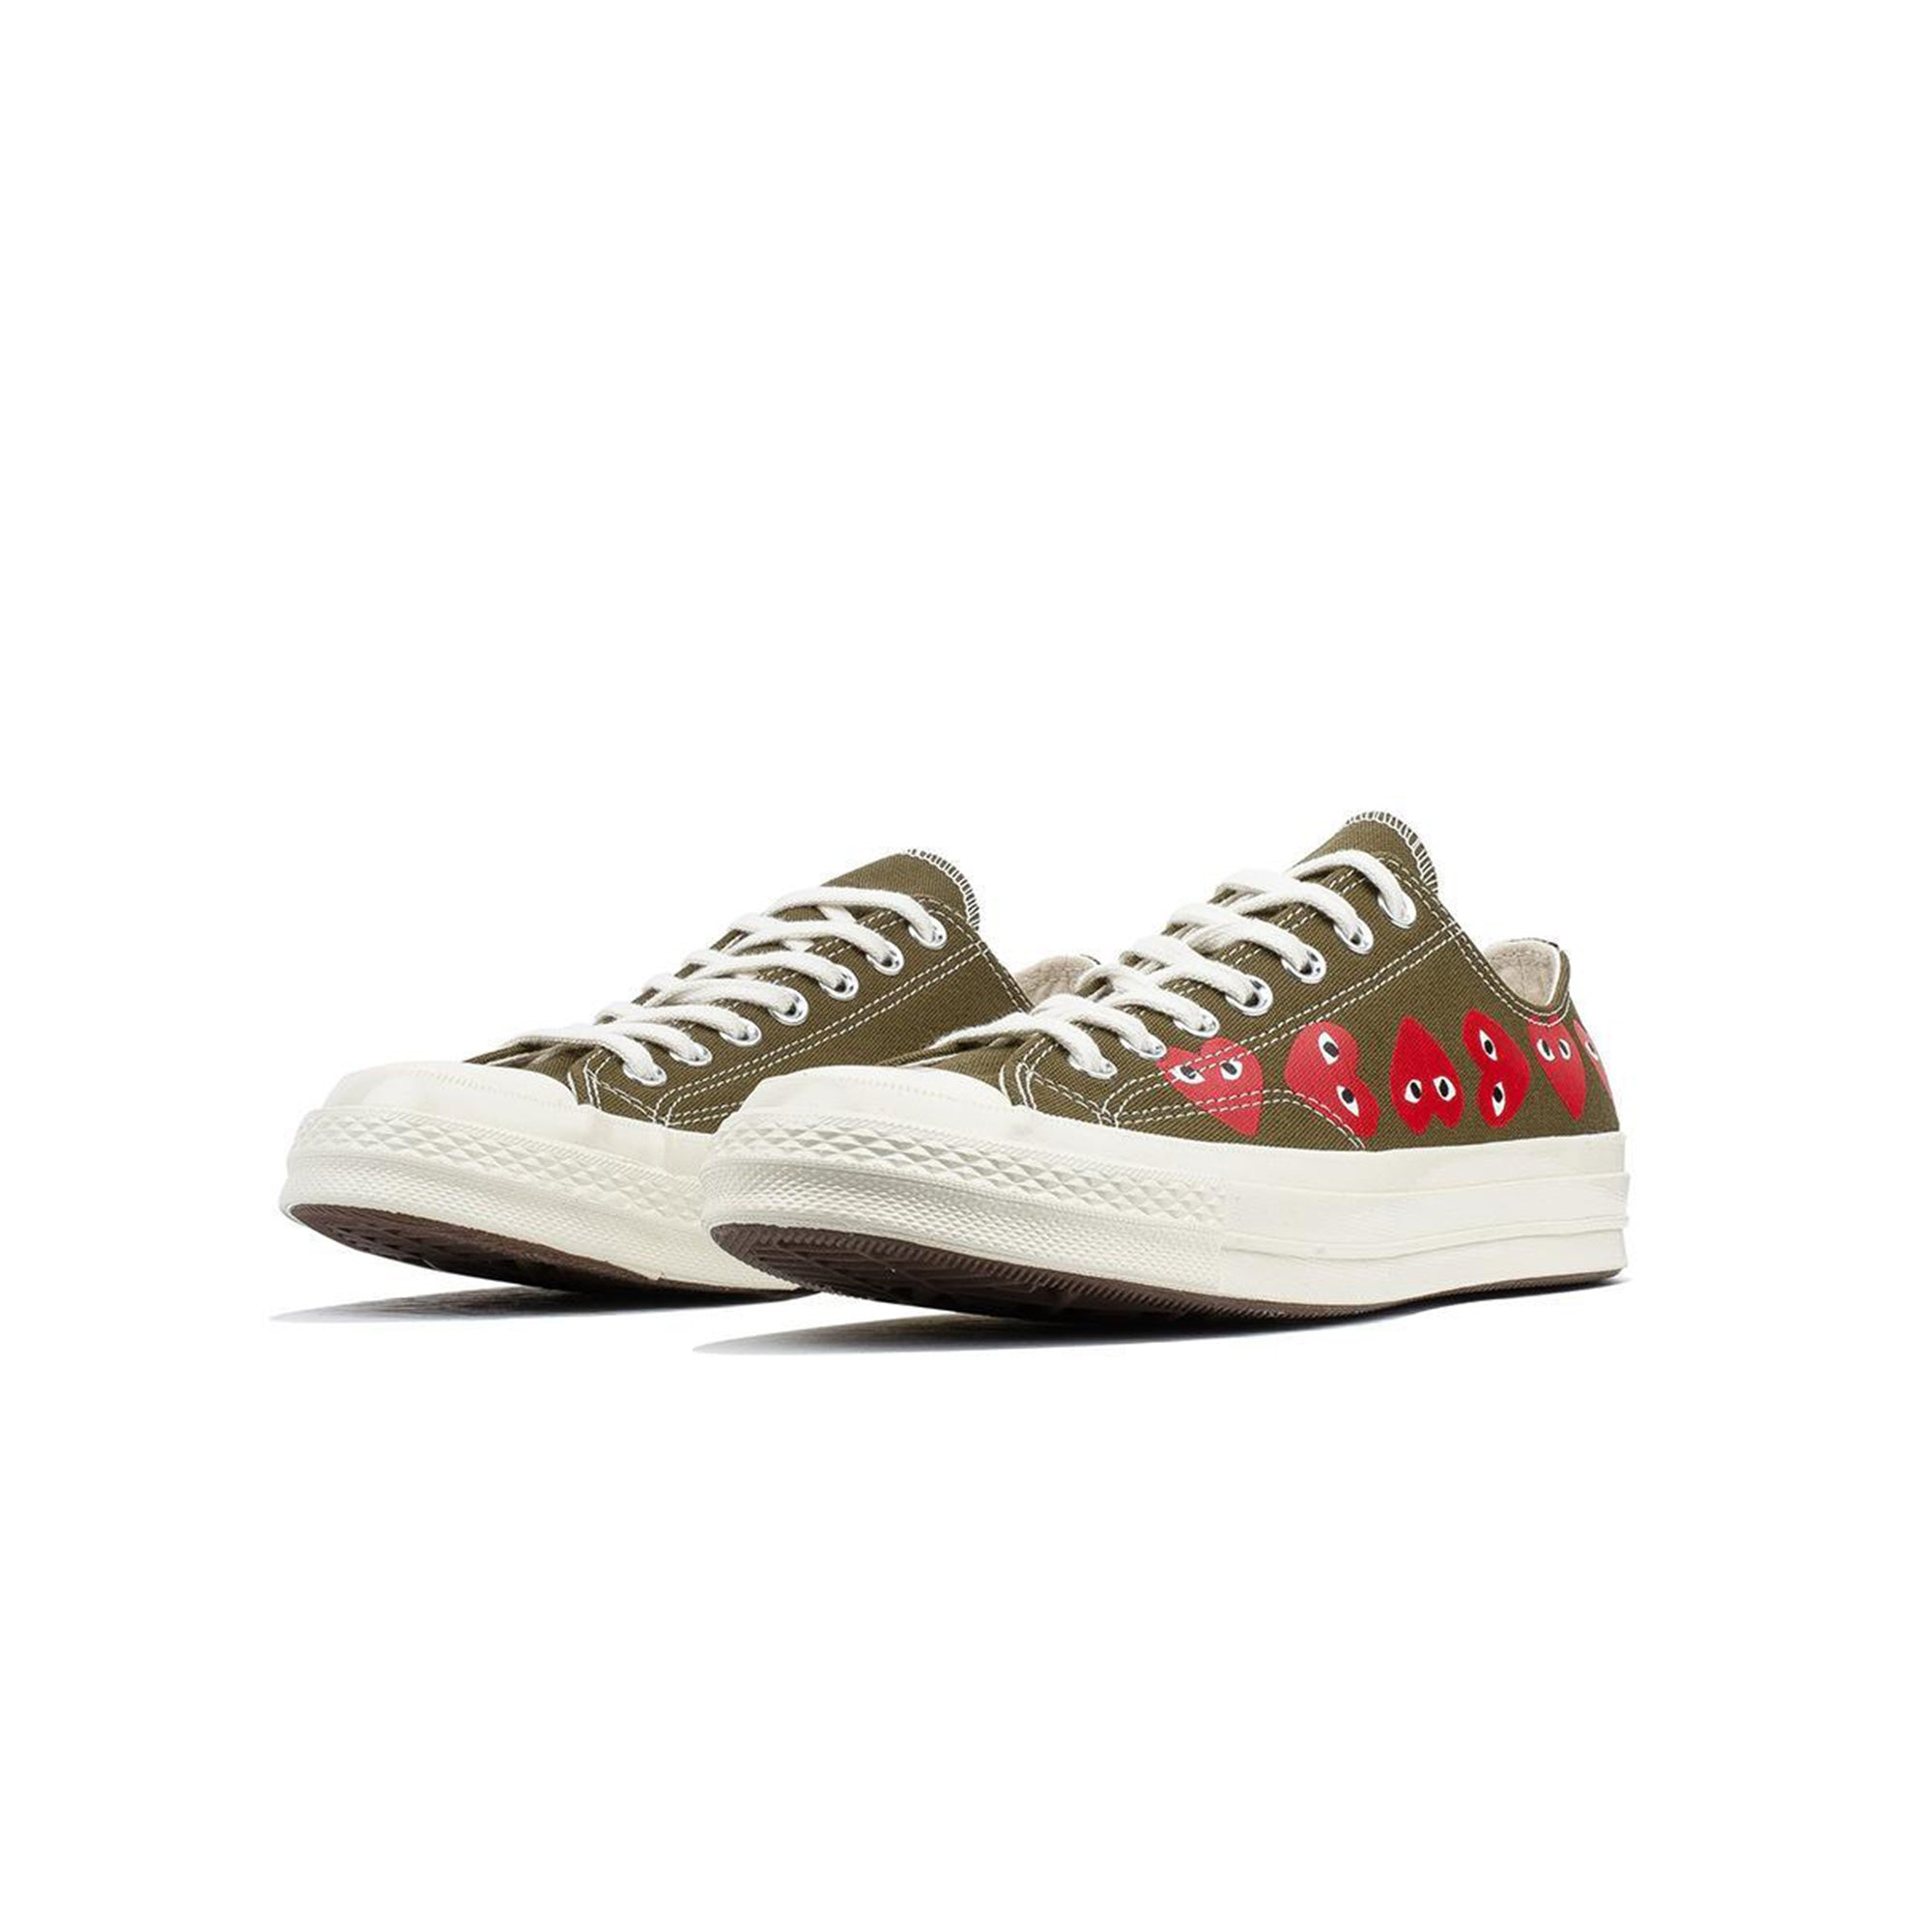 9599d99952ea Comme des Garcons PLAY x Converse Chuck 70 Low Multi Heart  162976C